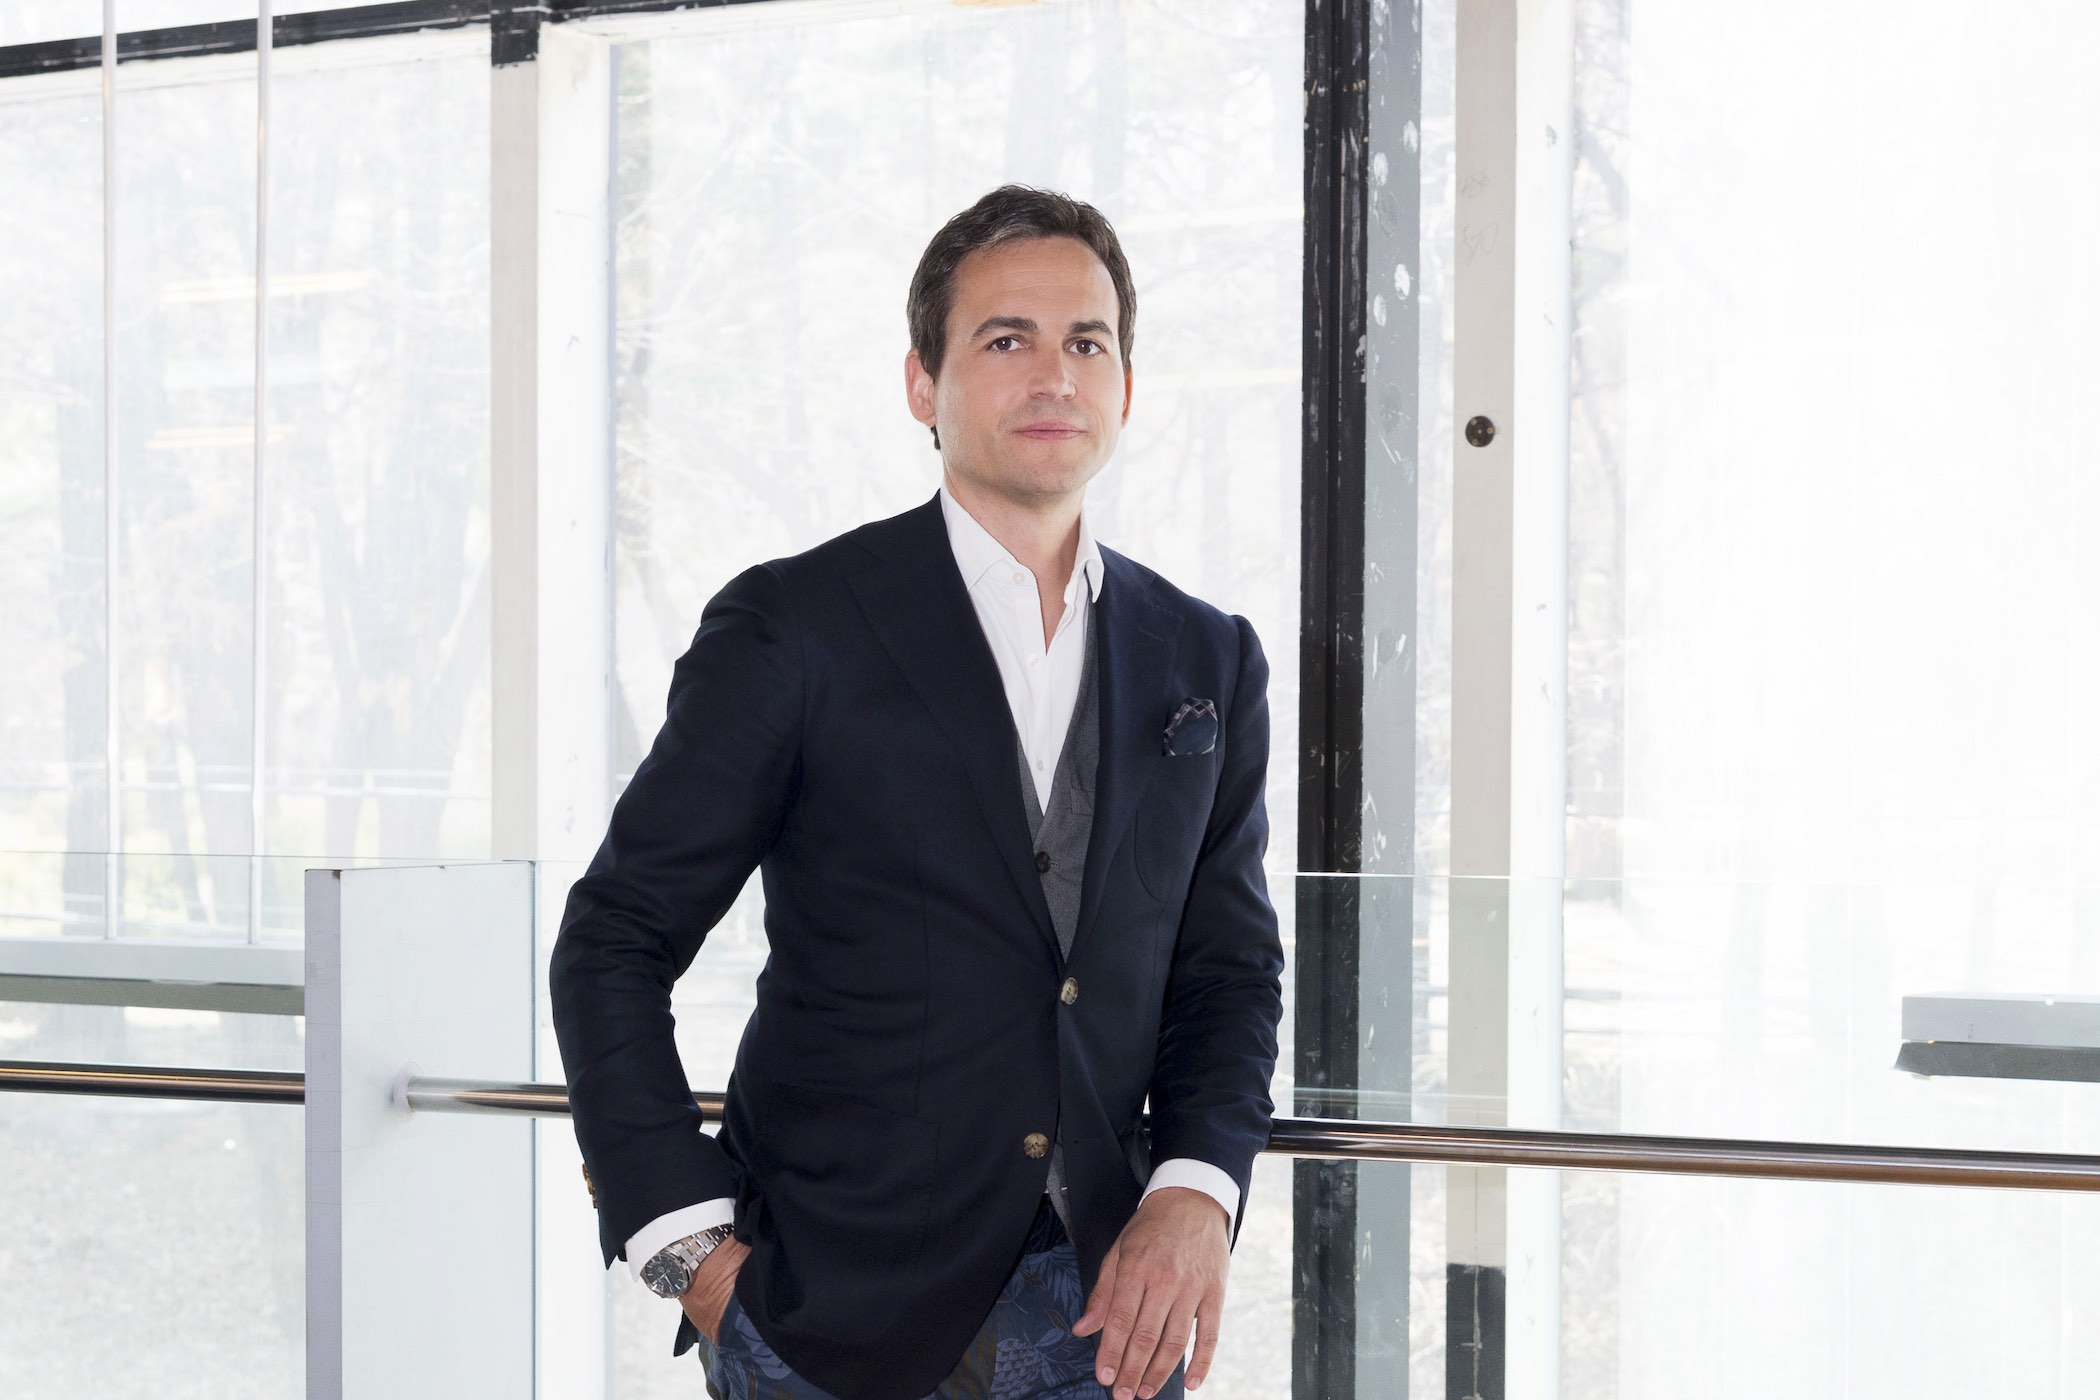 Maurice Lacroix Managing Director Stephane Waser interview